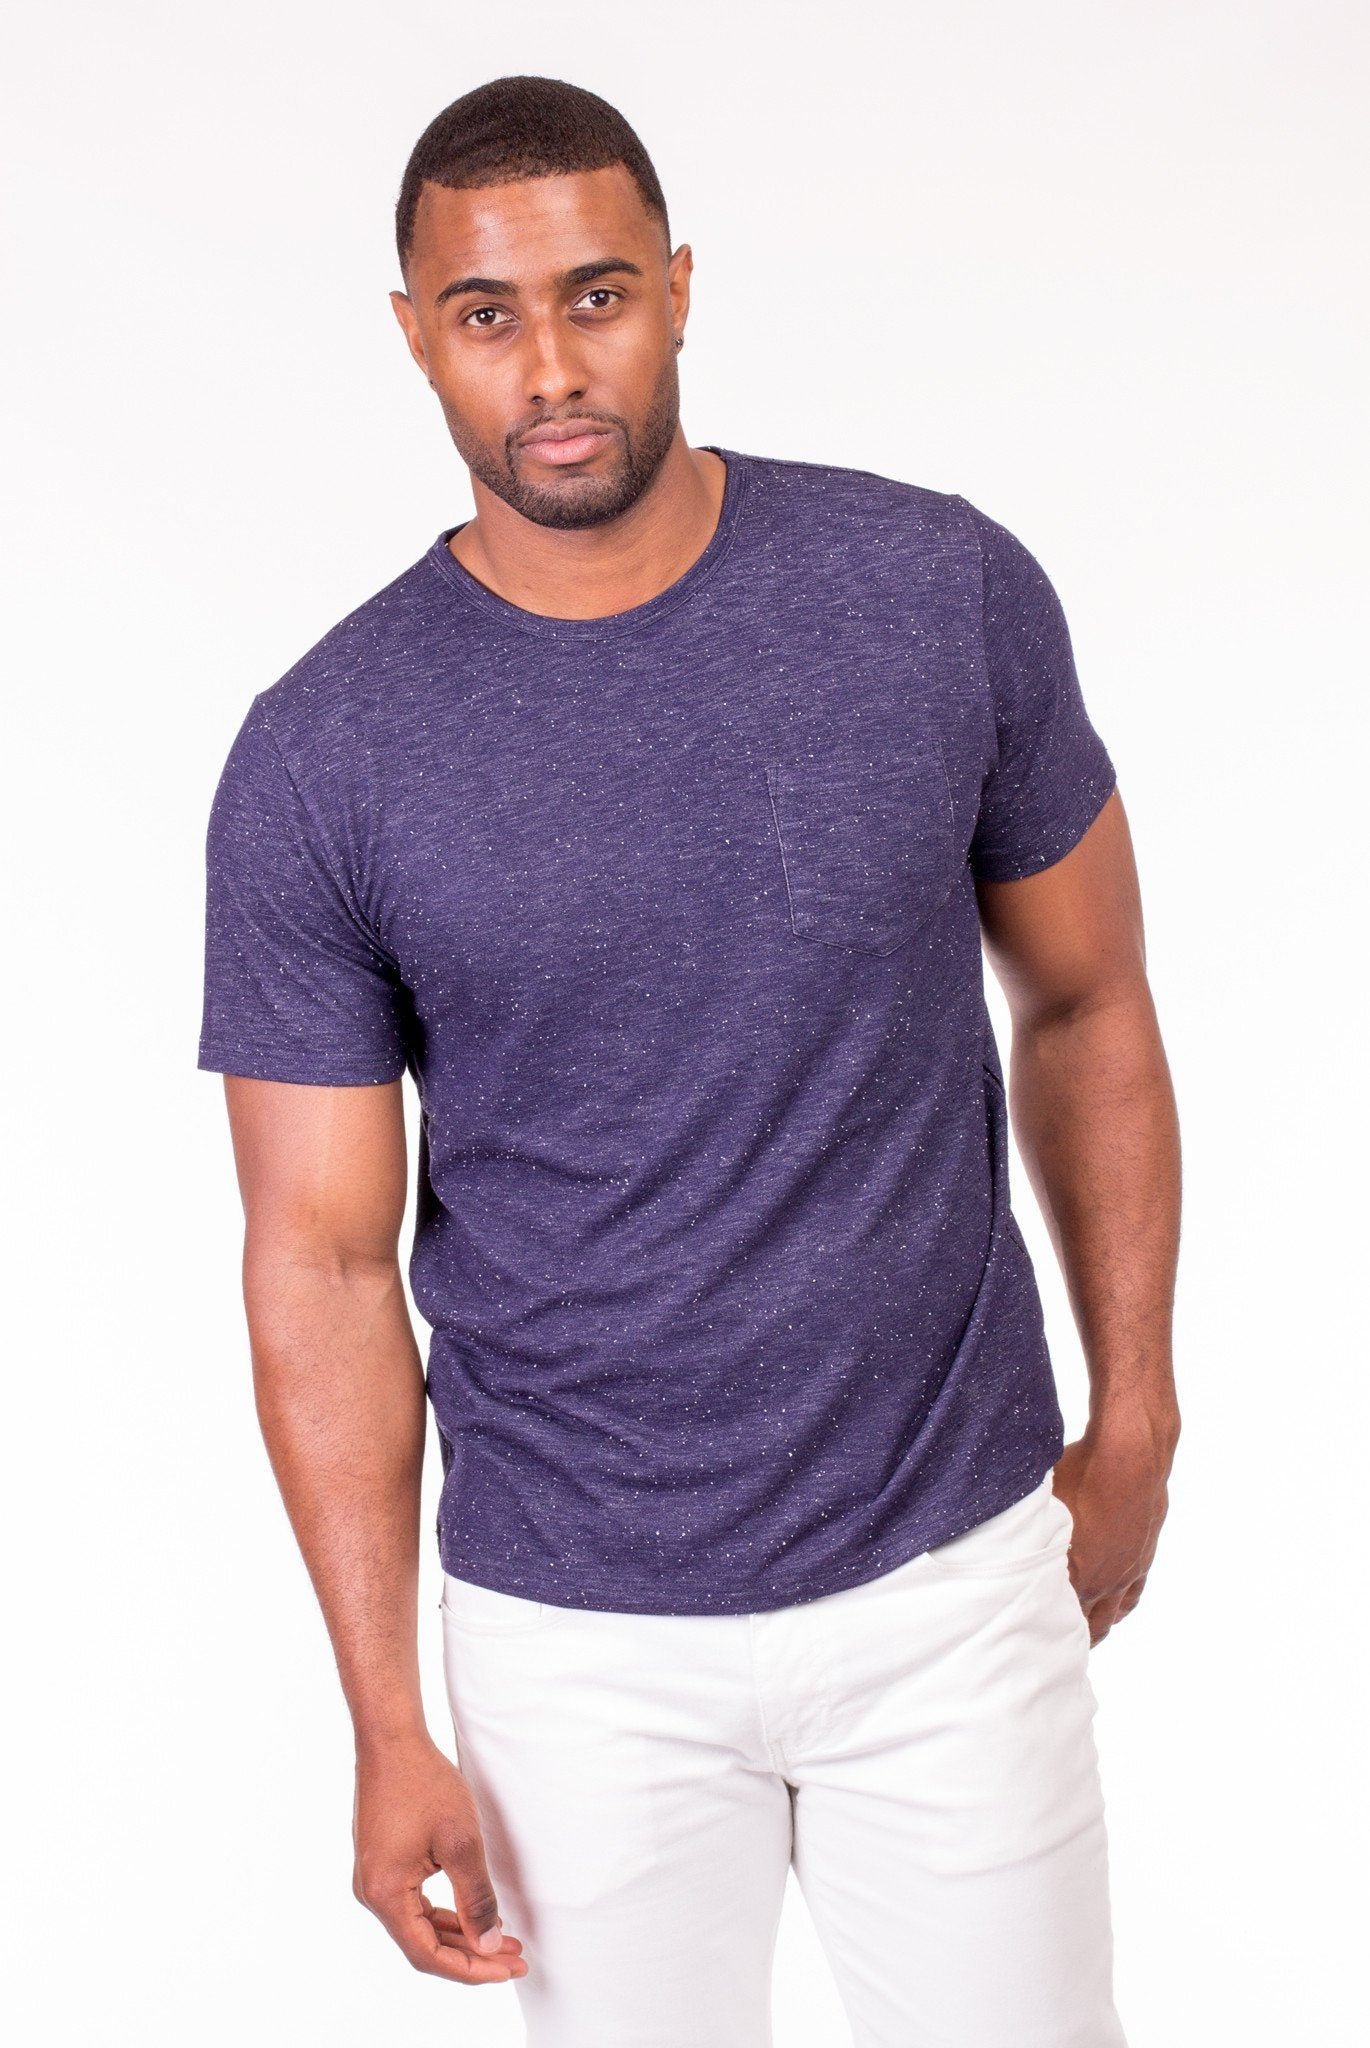 NAVY JACQUARD CREWNECK SHIRT | Poor Little Rich Boy Clothing